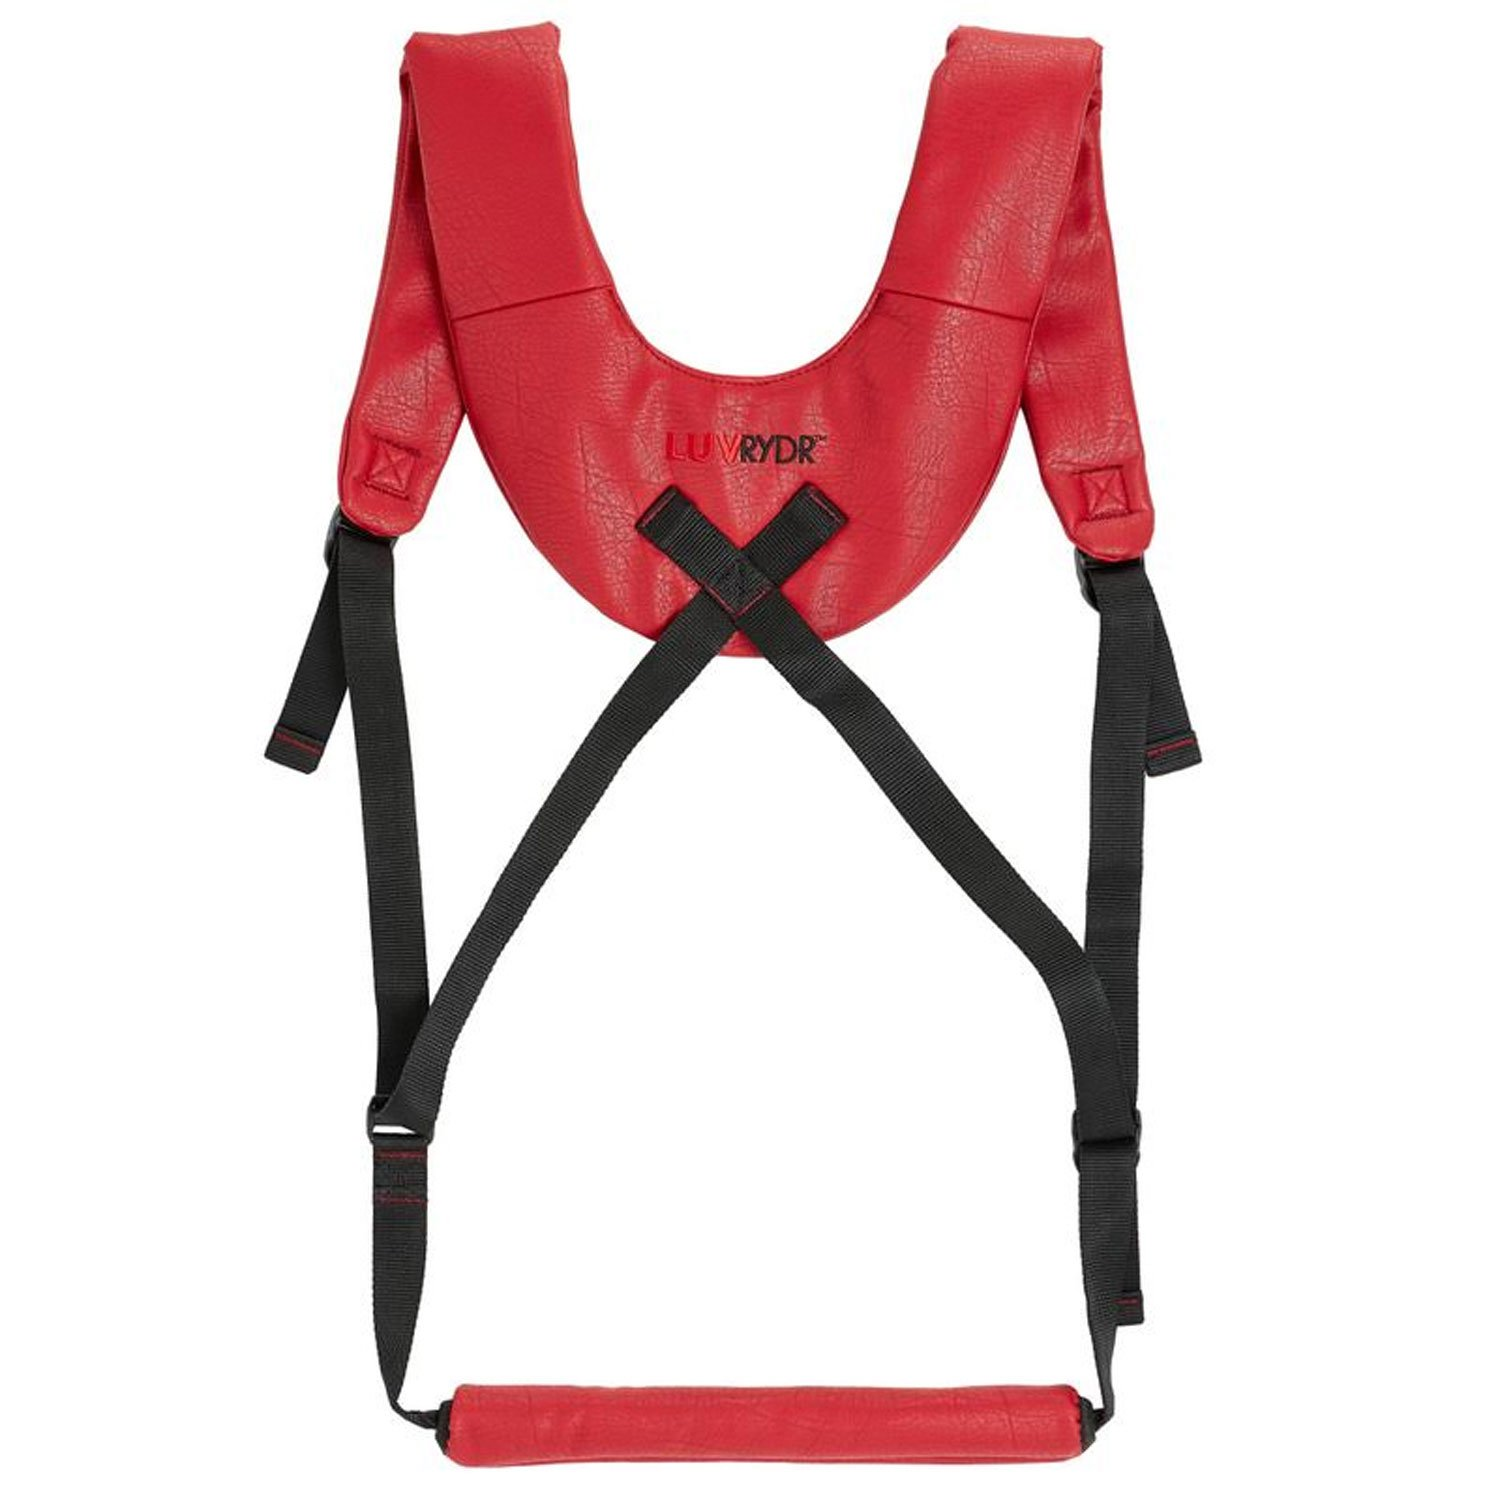 Restraint Doggy Style Strap Harness for Couples Sex Play by LUV Rydr (Red)